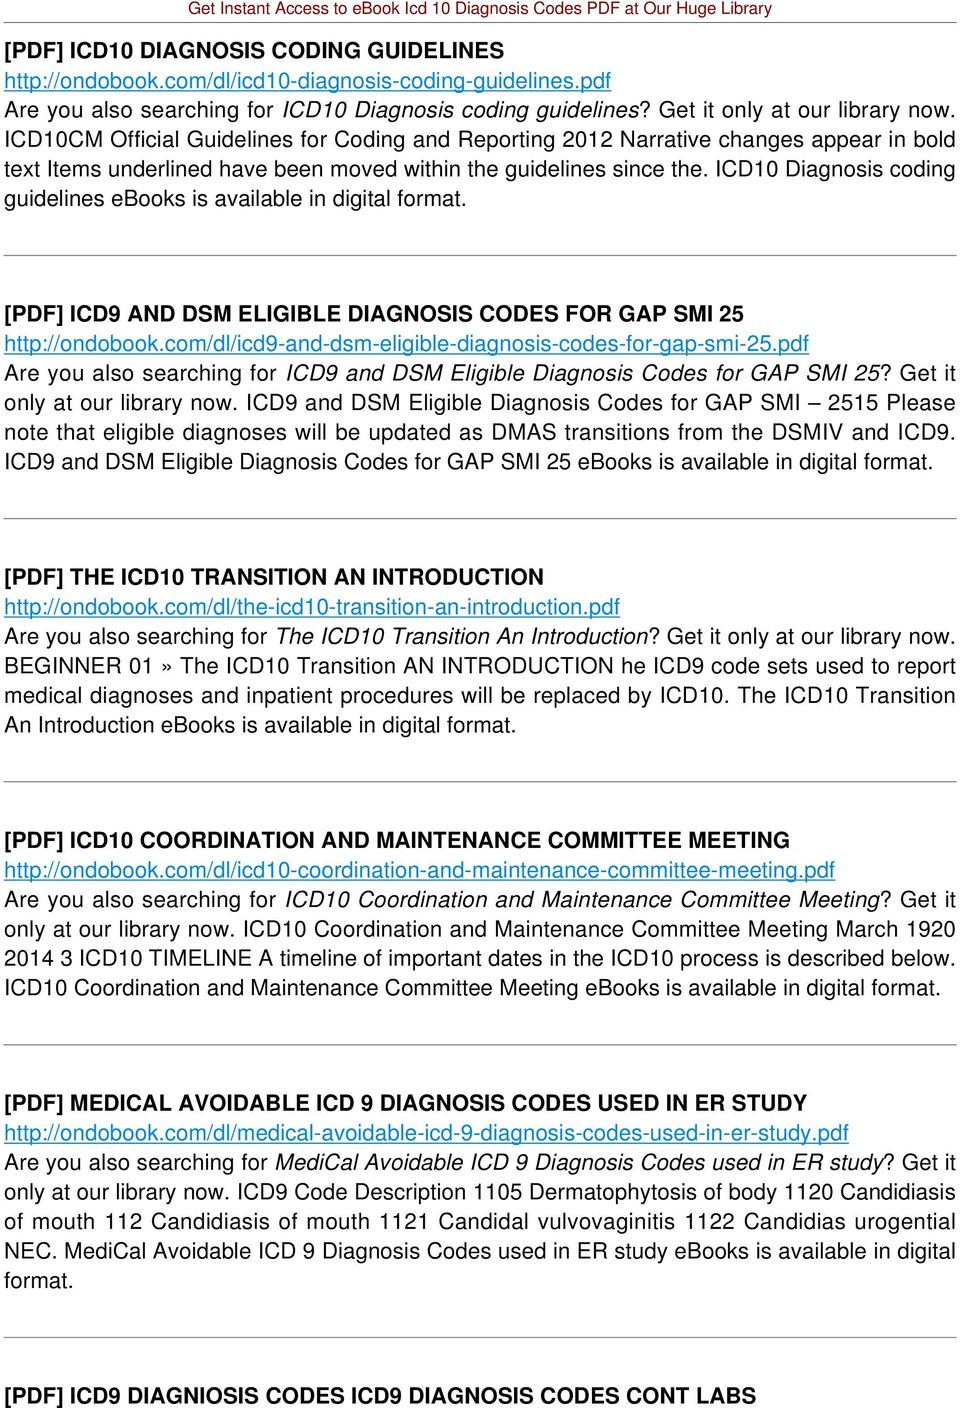 Icd 10 diagnosis codes pdf pdf icd10 diagnosis coding guidelines ebooks is available in digital pdf icd9 and dsm eligible fandeluxe Images